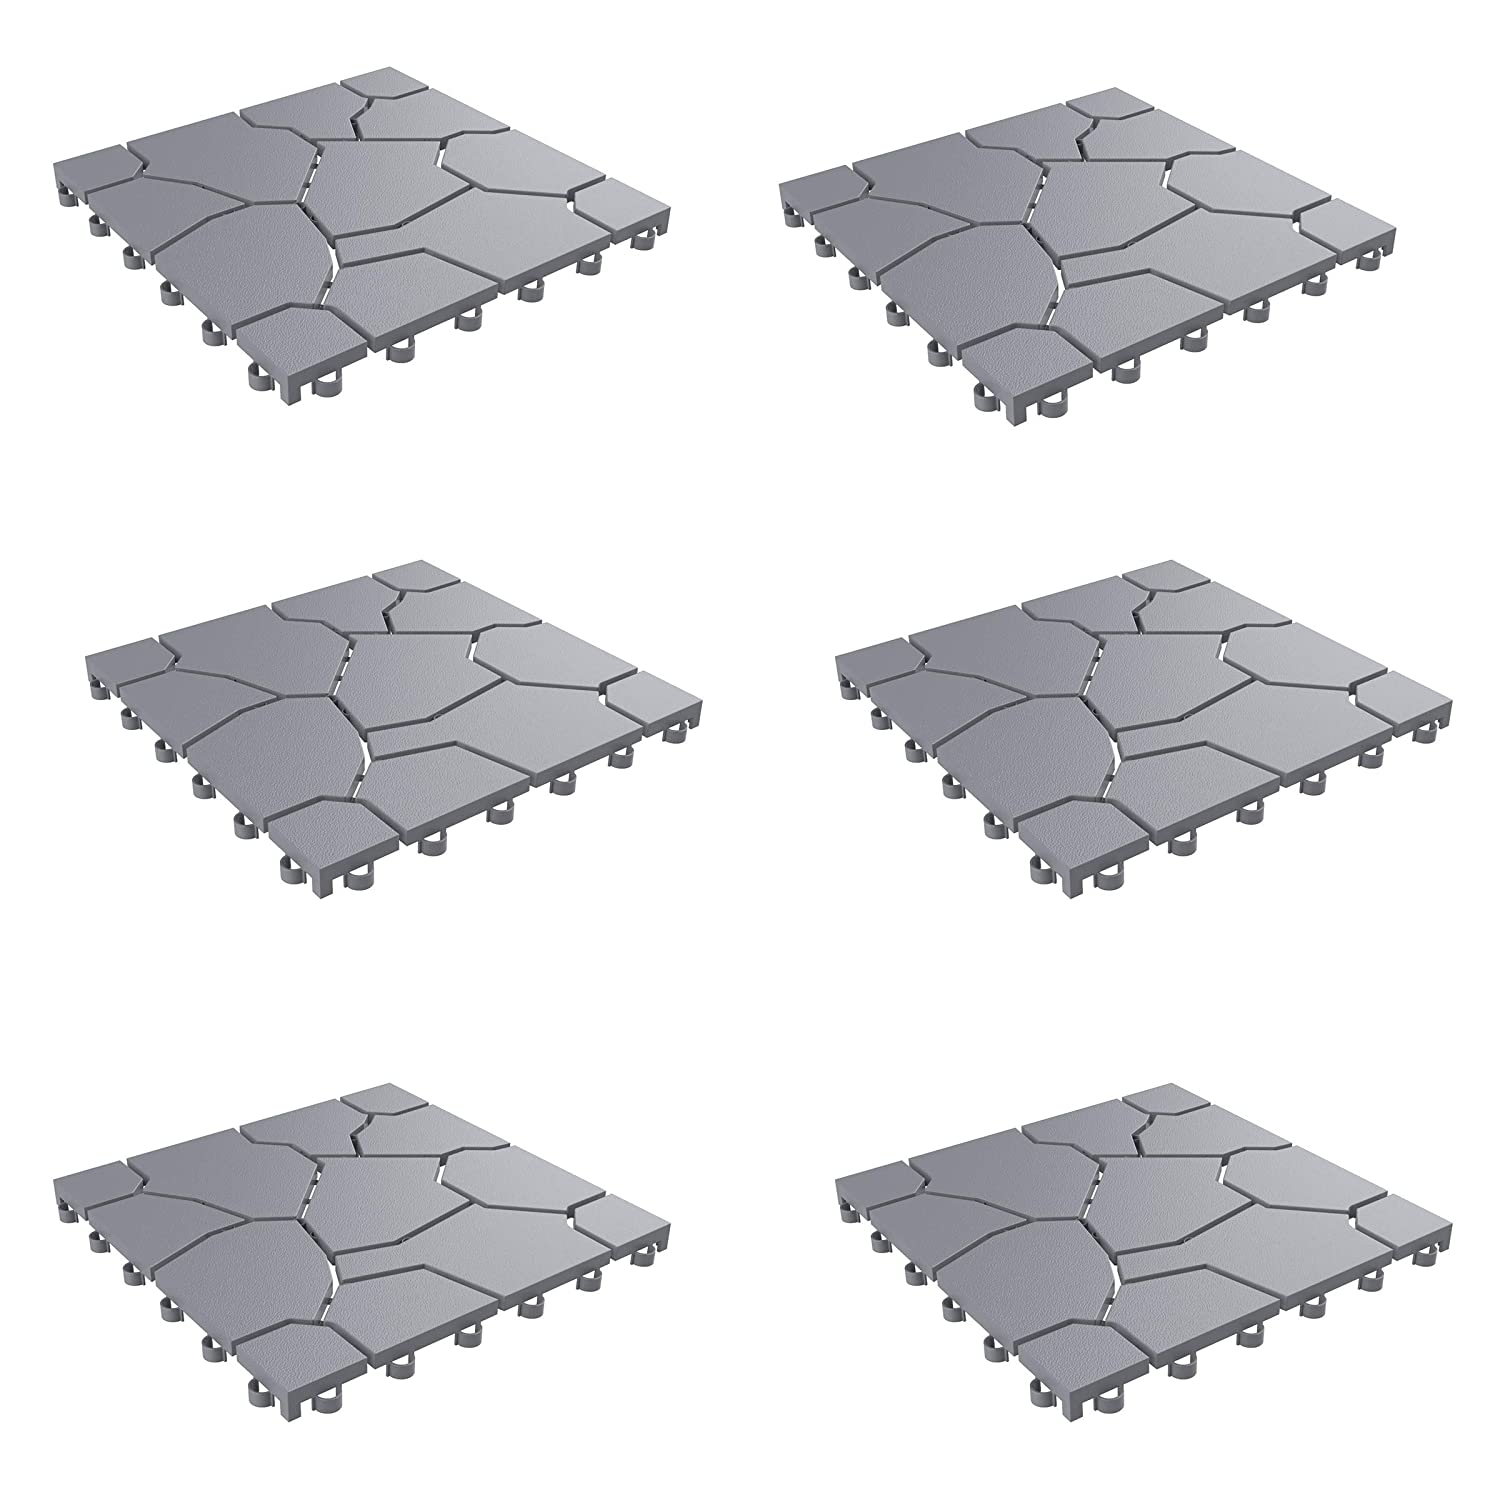 Pure Garden 50-LG1171 Patio and Deck Tiles – Interlocking Stone Look Outdoor Flooring Pavers Weather Resistant and Anti-Slip Square DIY Mat (Grey Set of 6),